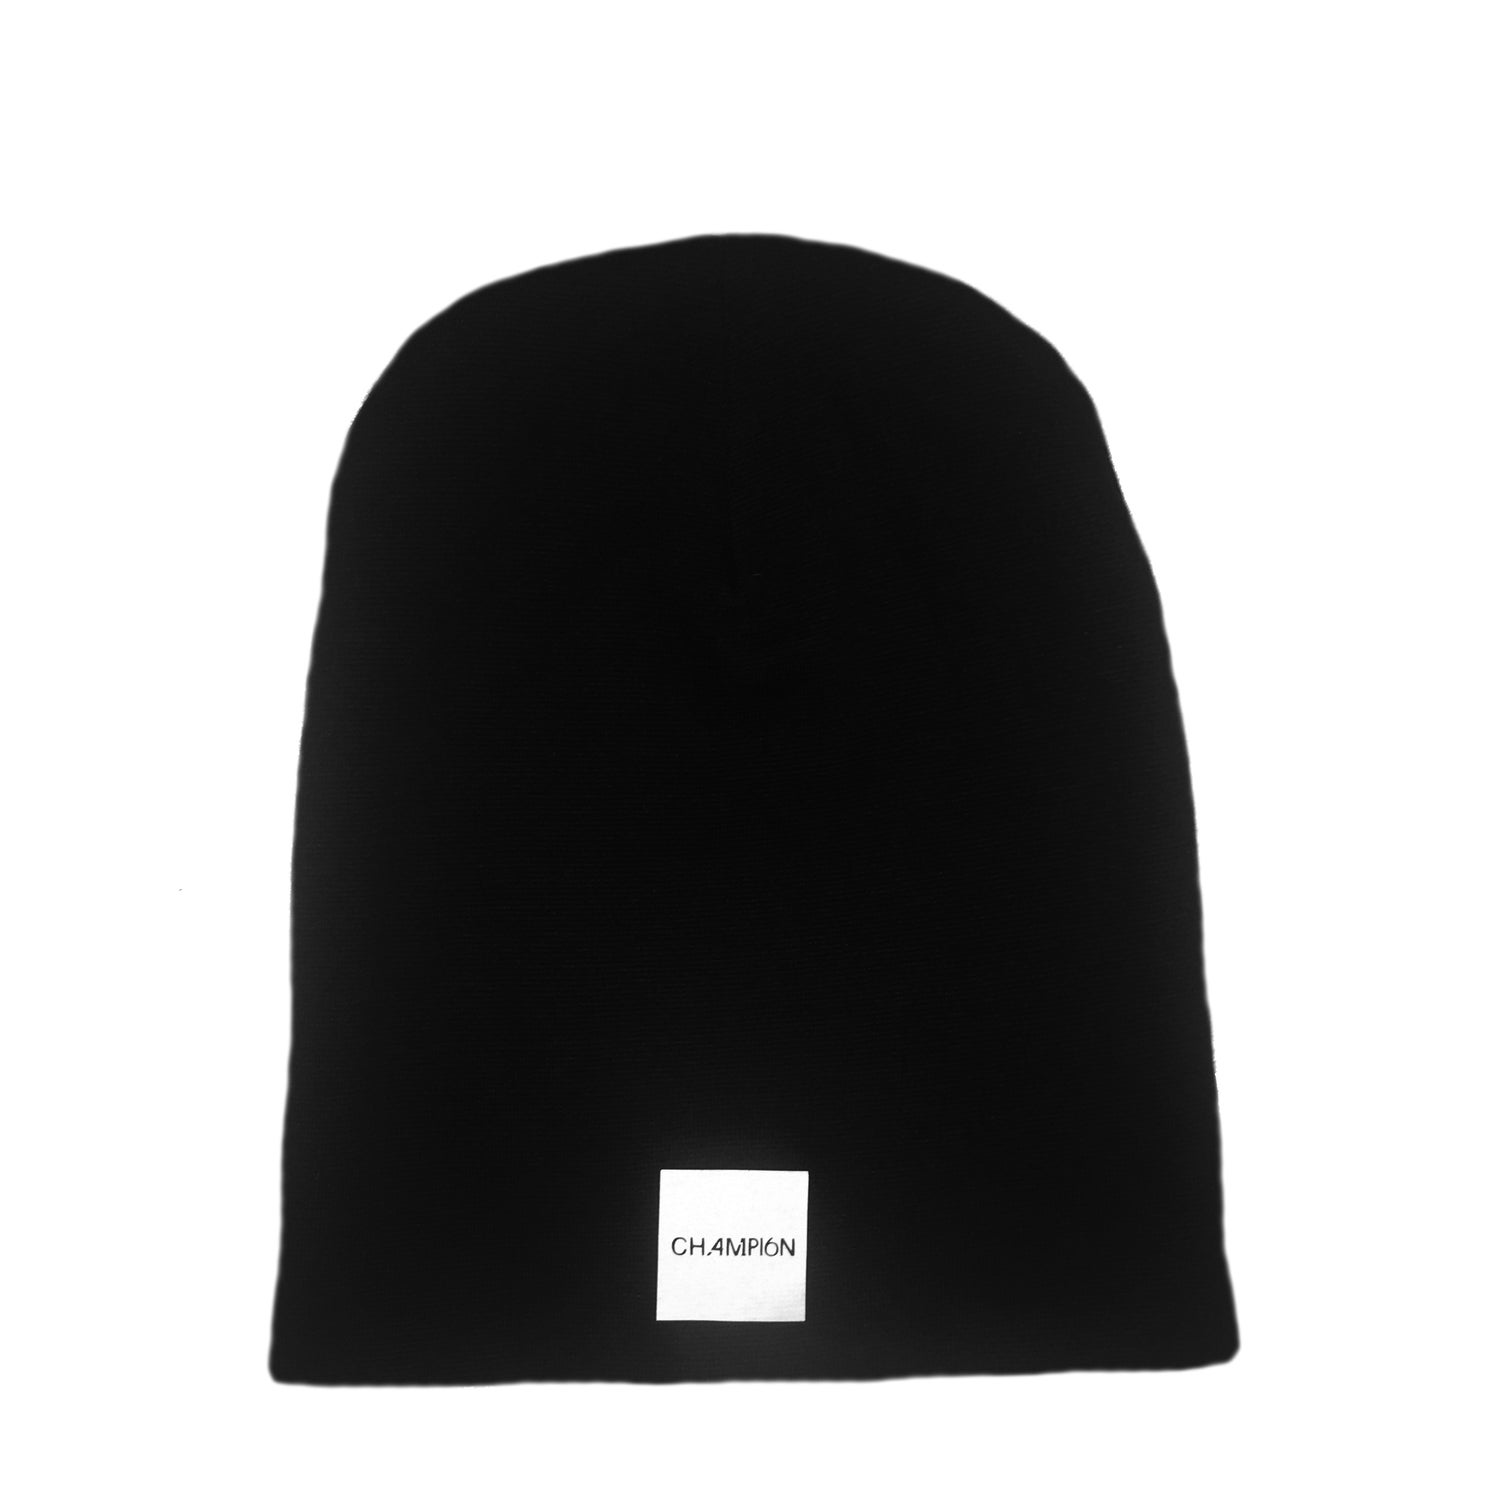 Image of unisex reversible beanie - black